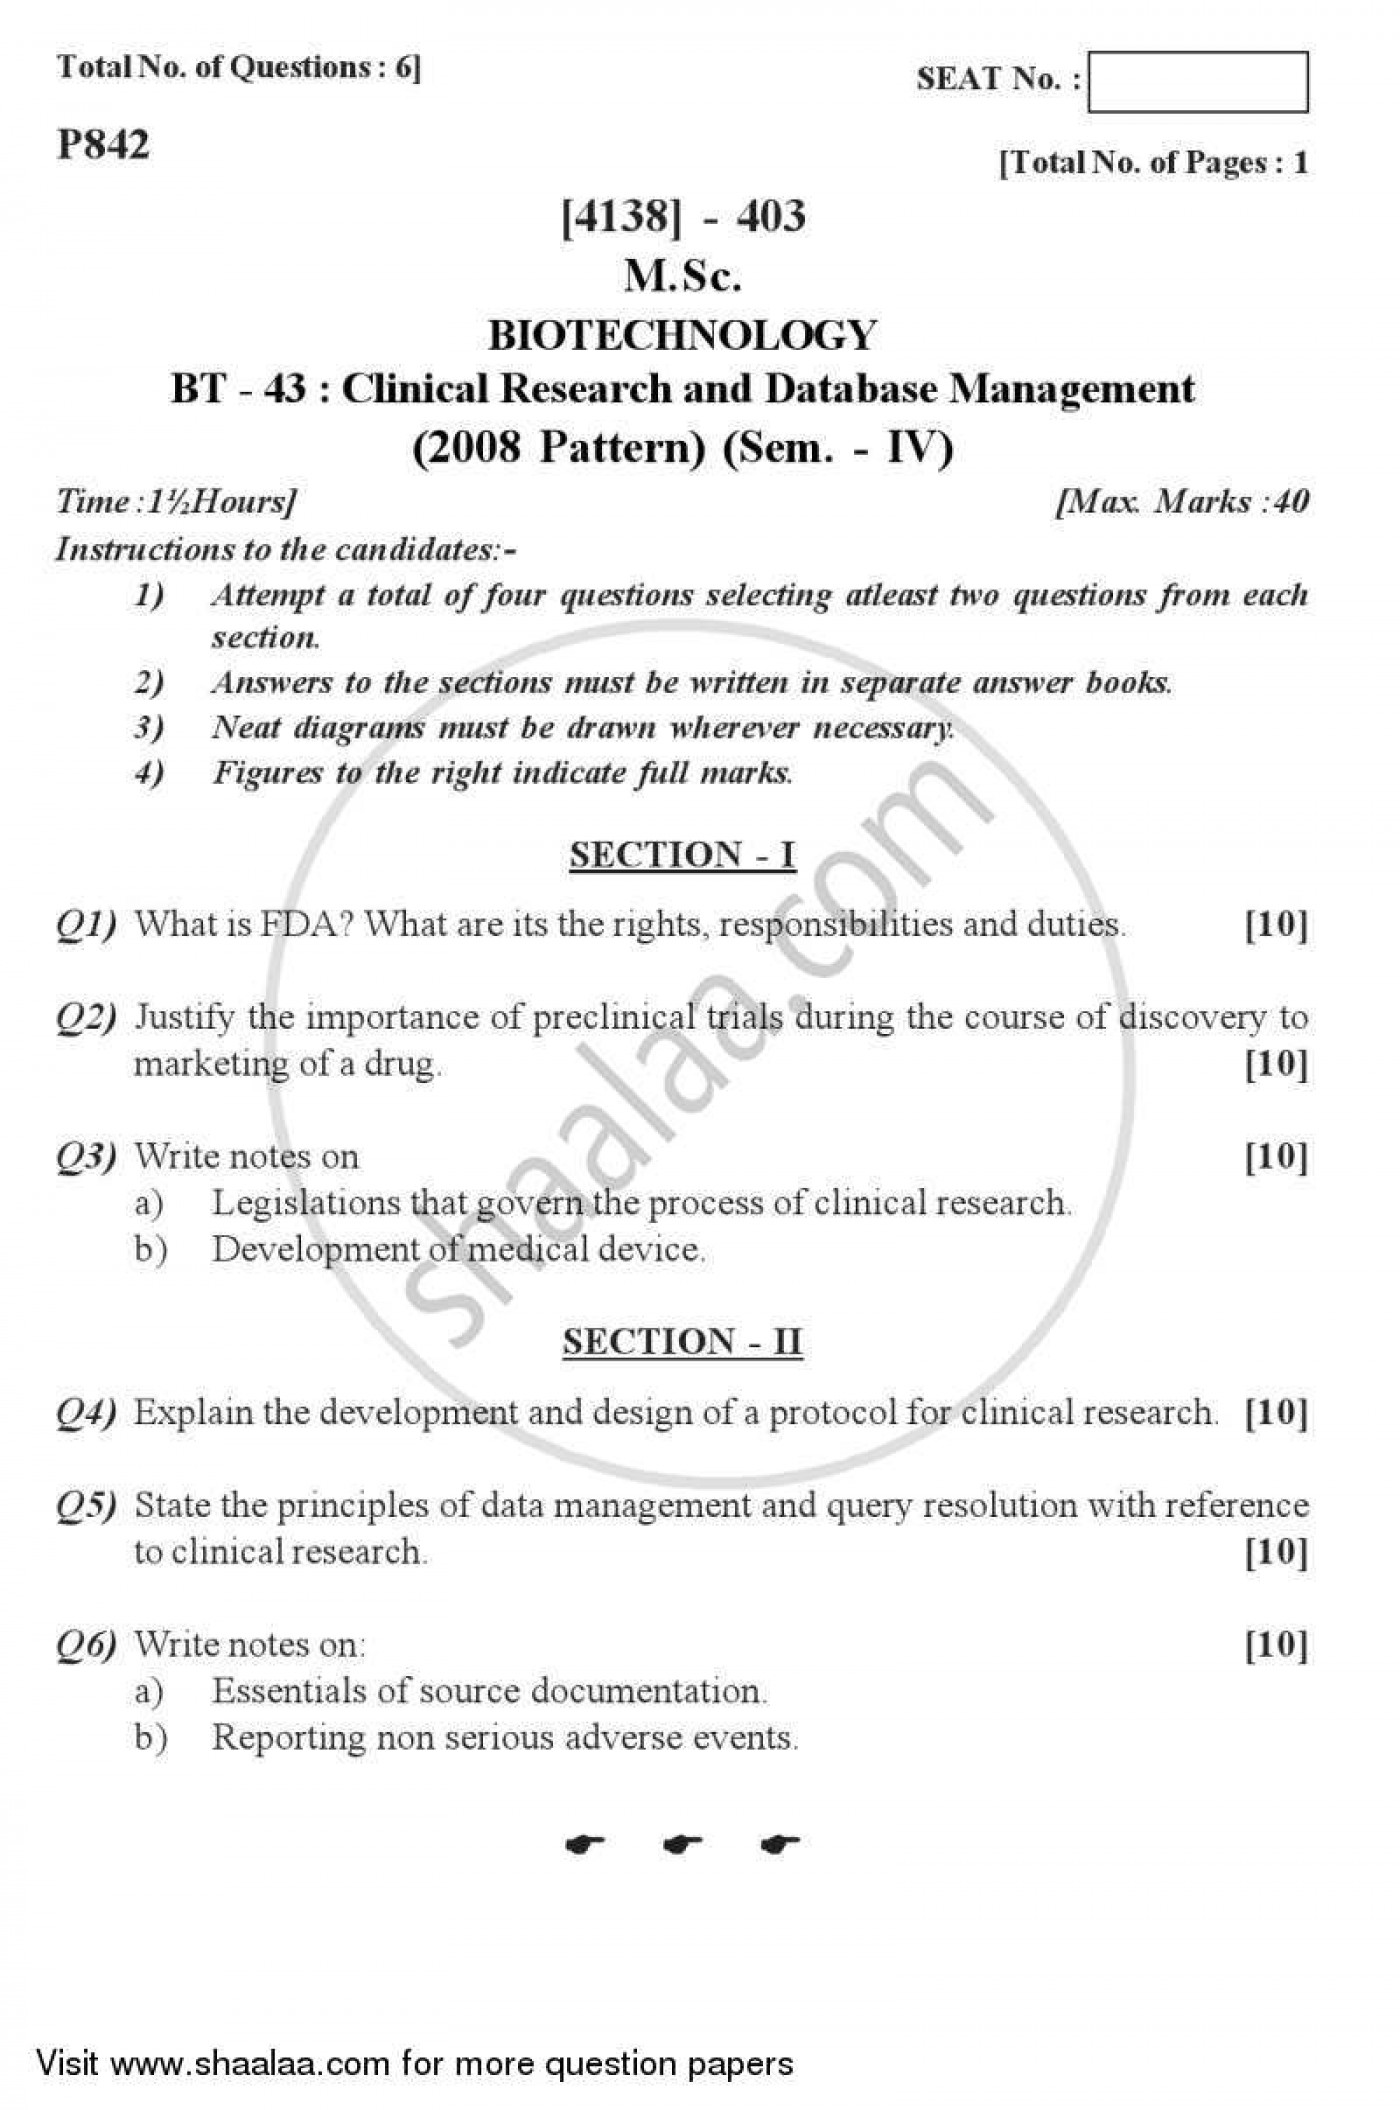 020 University Of Pune Master Msc Clinical Research Database Management Biotech Semester 2012 25b9c0e3f87cb432992c22355b1608732 Phenomenal Paper Security Design Topics Ieee 1400